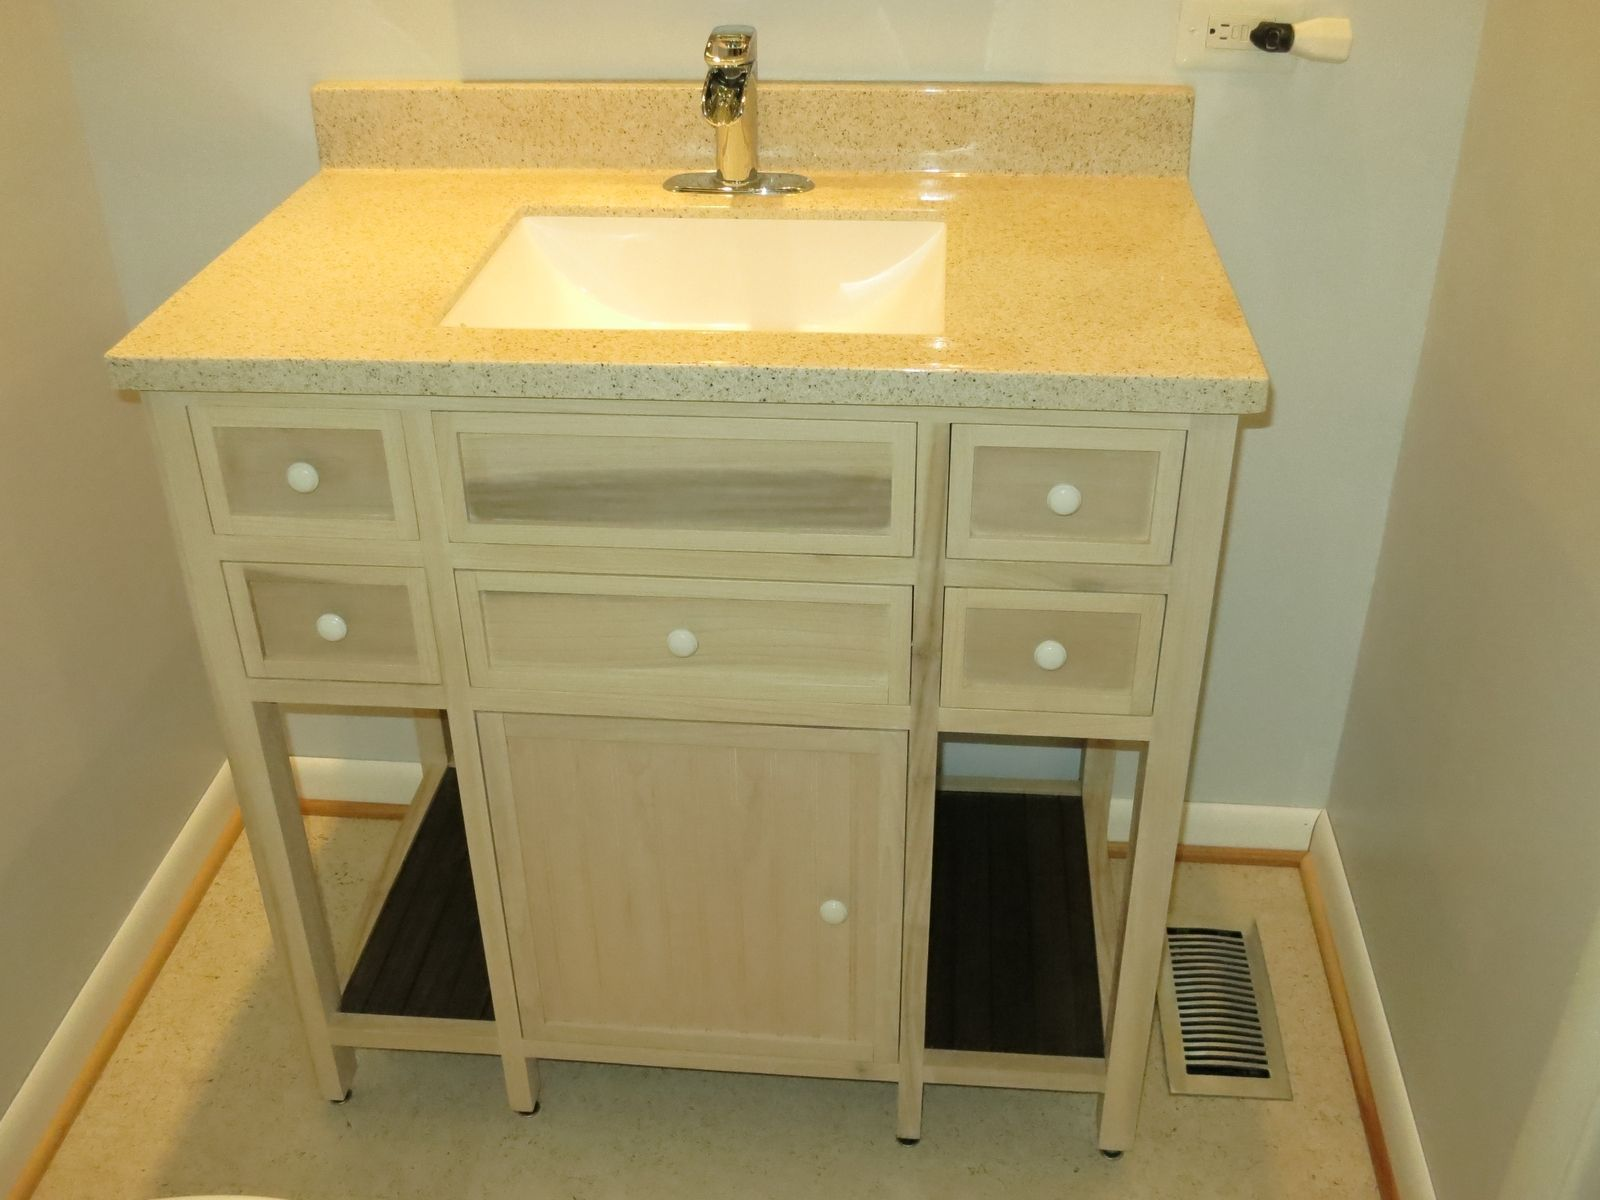 Handmade Custom Made Cabinets And Vanities By Concept Wood